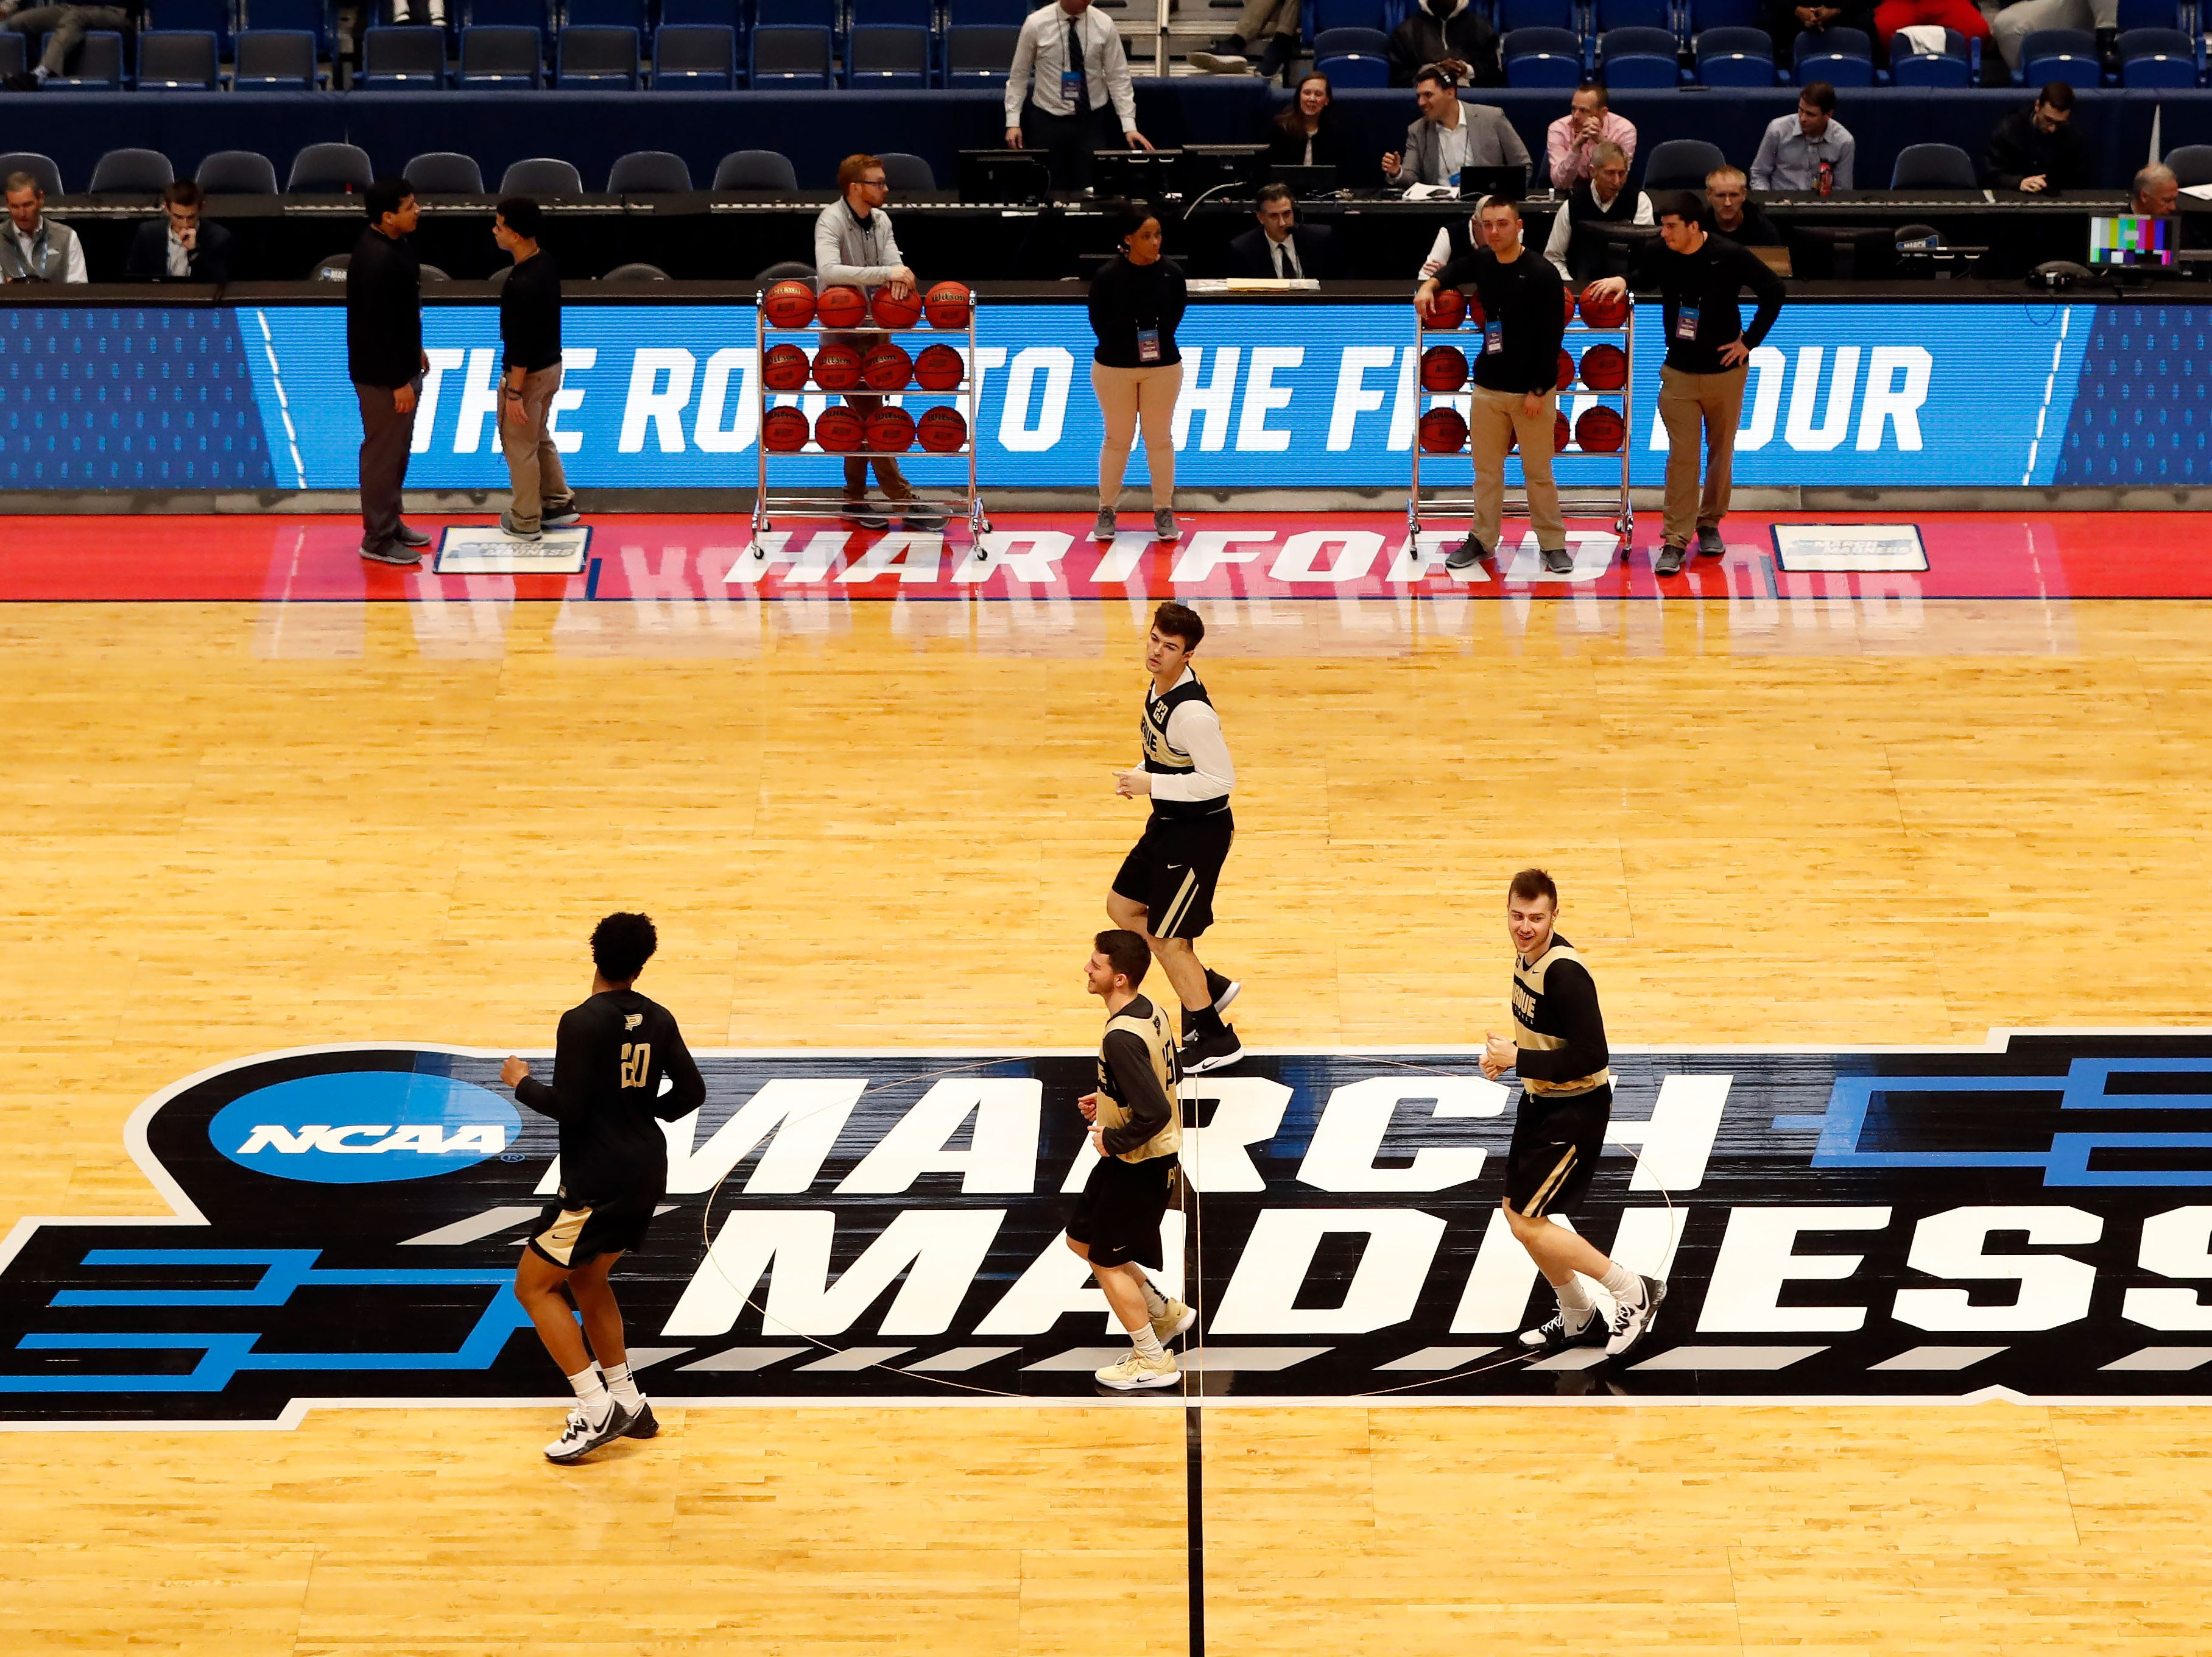 Mar 20, 2019; Hartford, CT, USA; Members of the Purdue Boilermakers run through the March Madness logo during practice before the first round of the 2019 NCAA Tournament at XL Center. Mandatory Credit: David Butler II-USA TODAY Sports